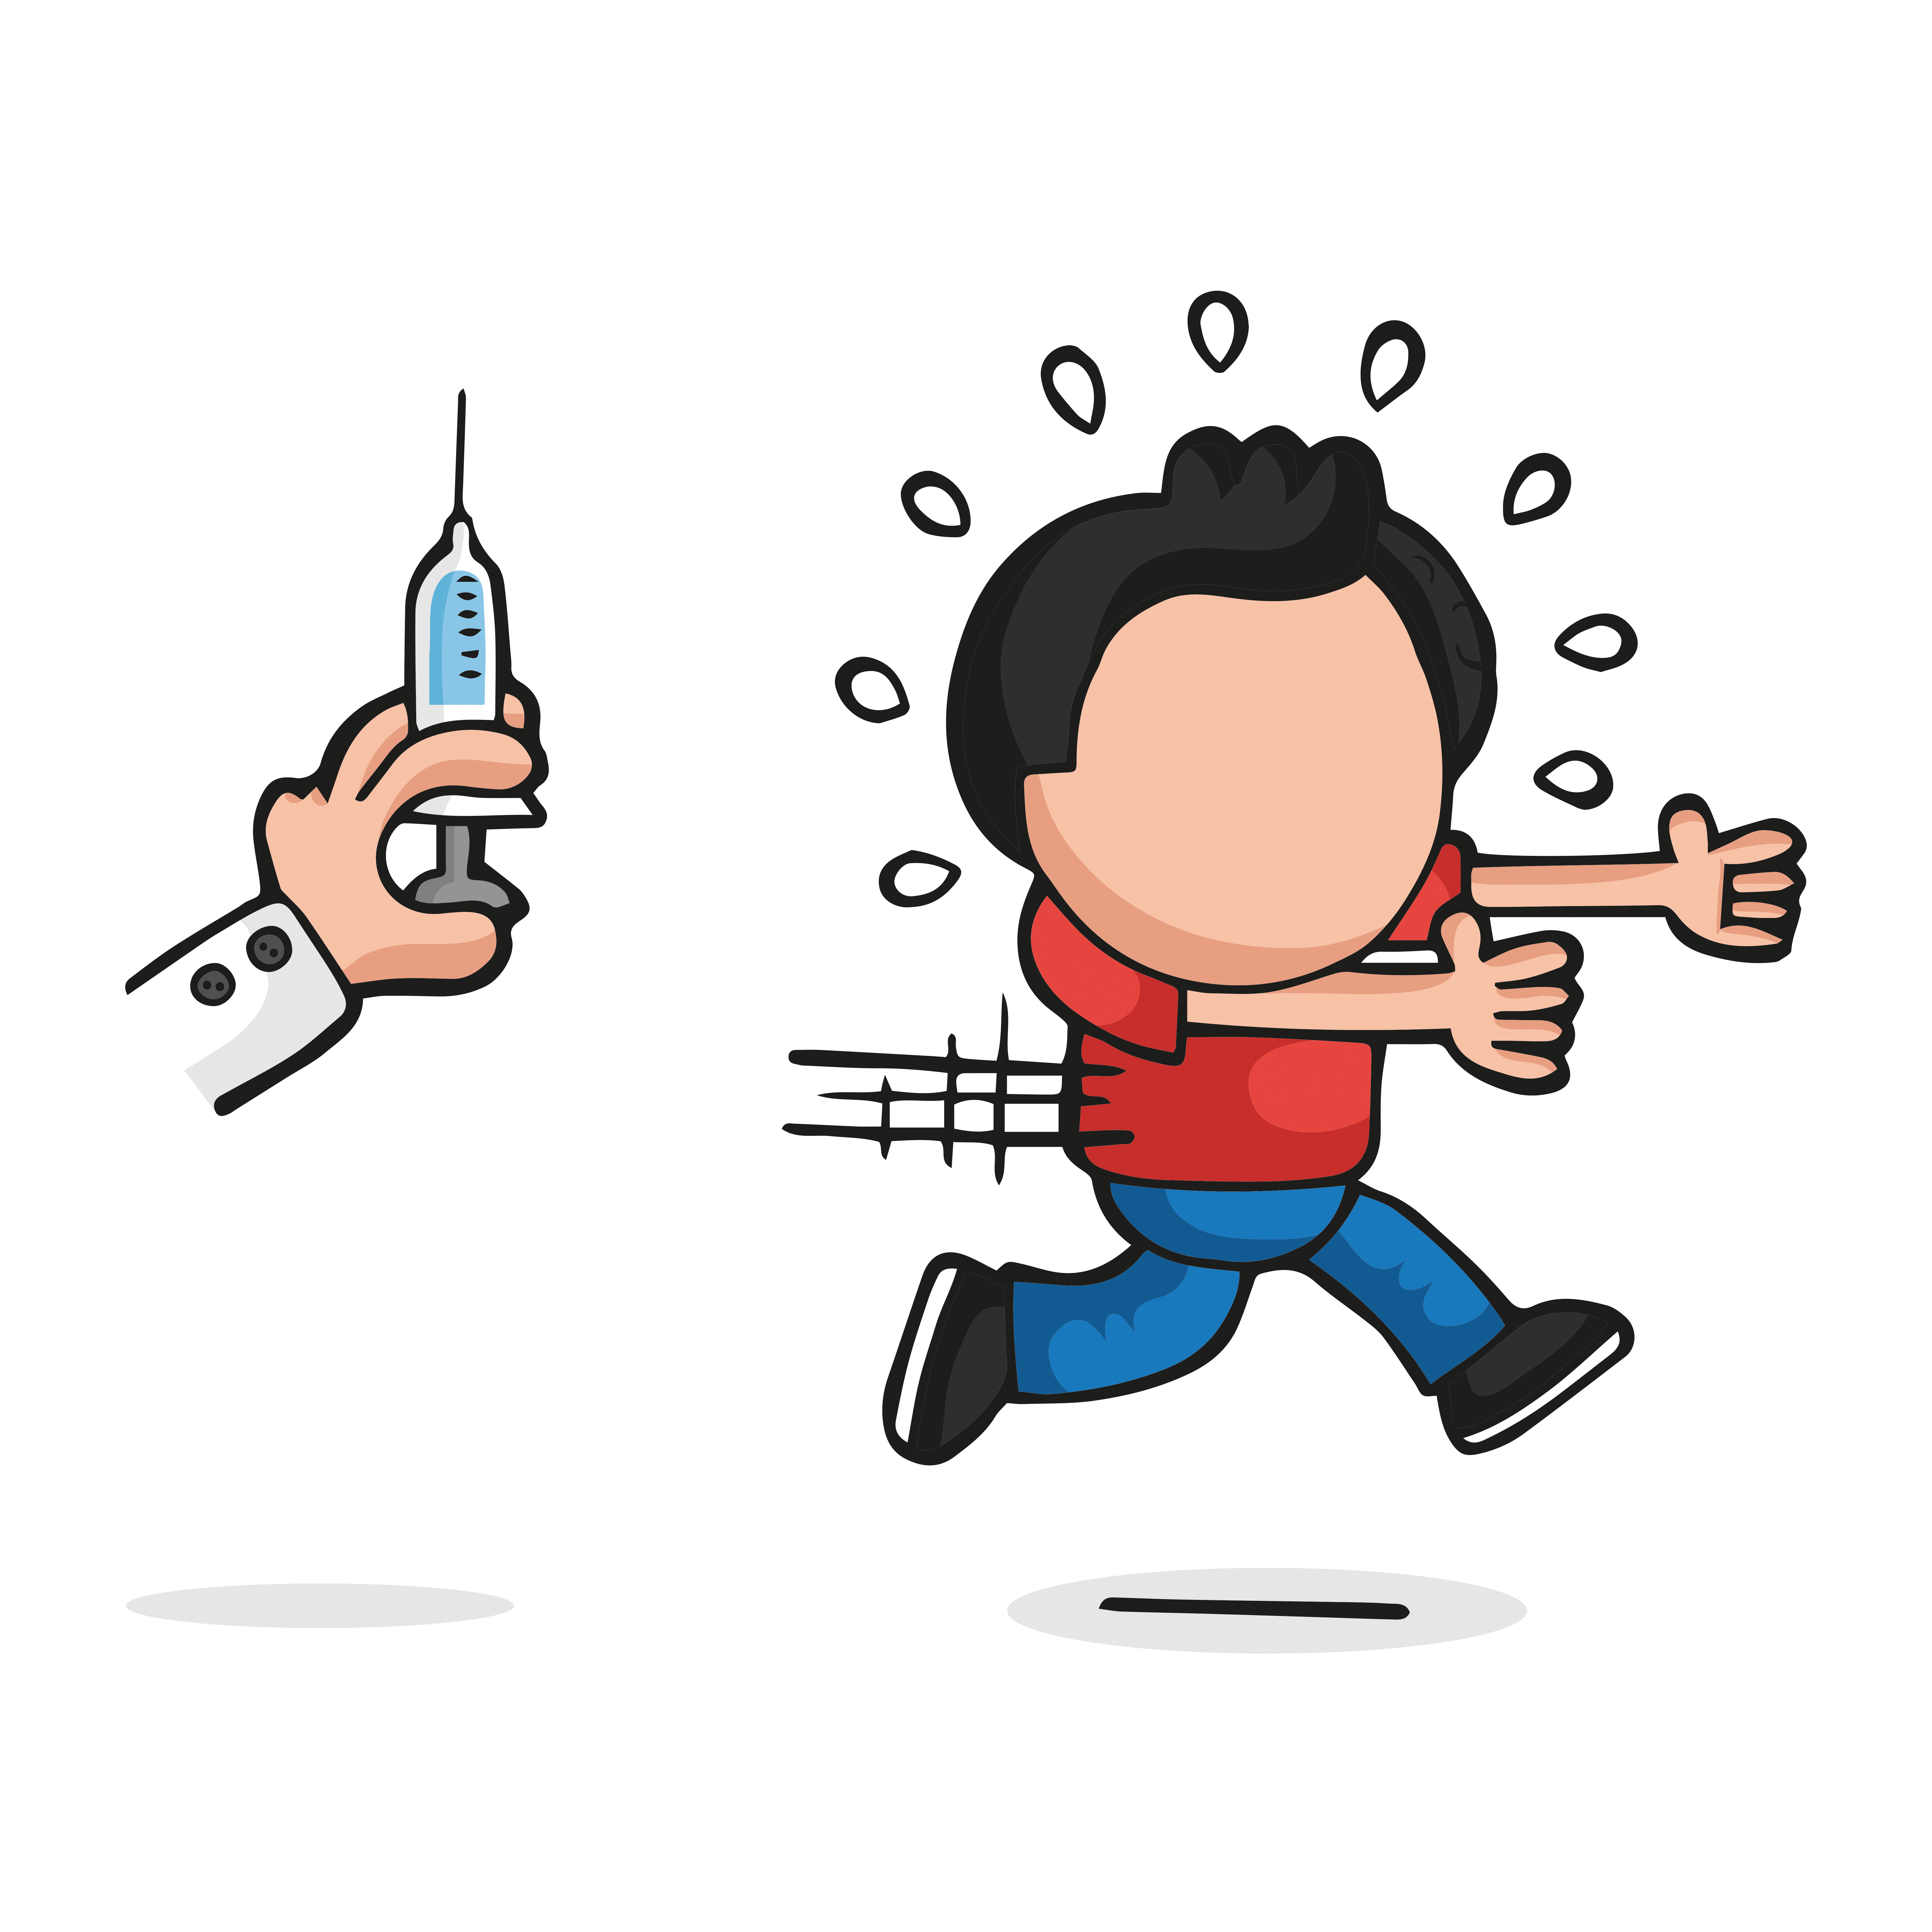 Vector hand-drawn cartoon illustration of man afraid and running from doctor's syringe.